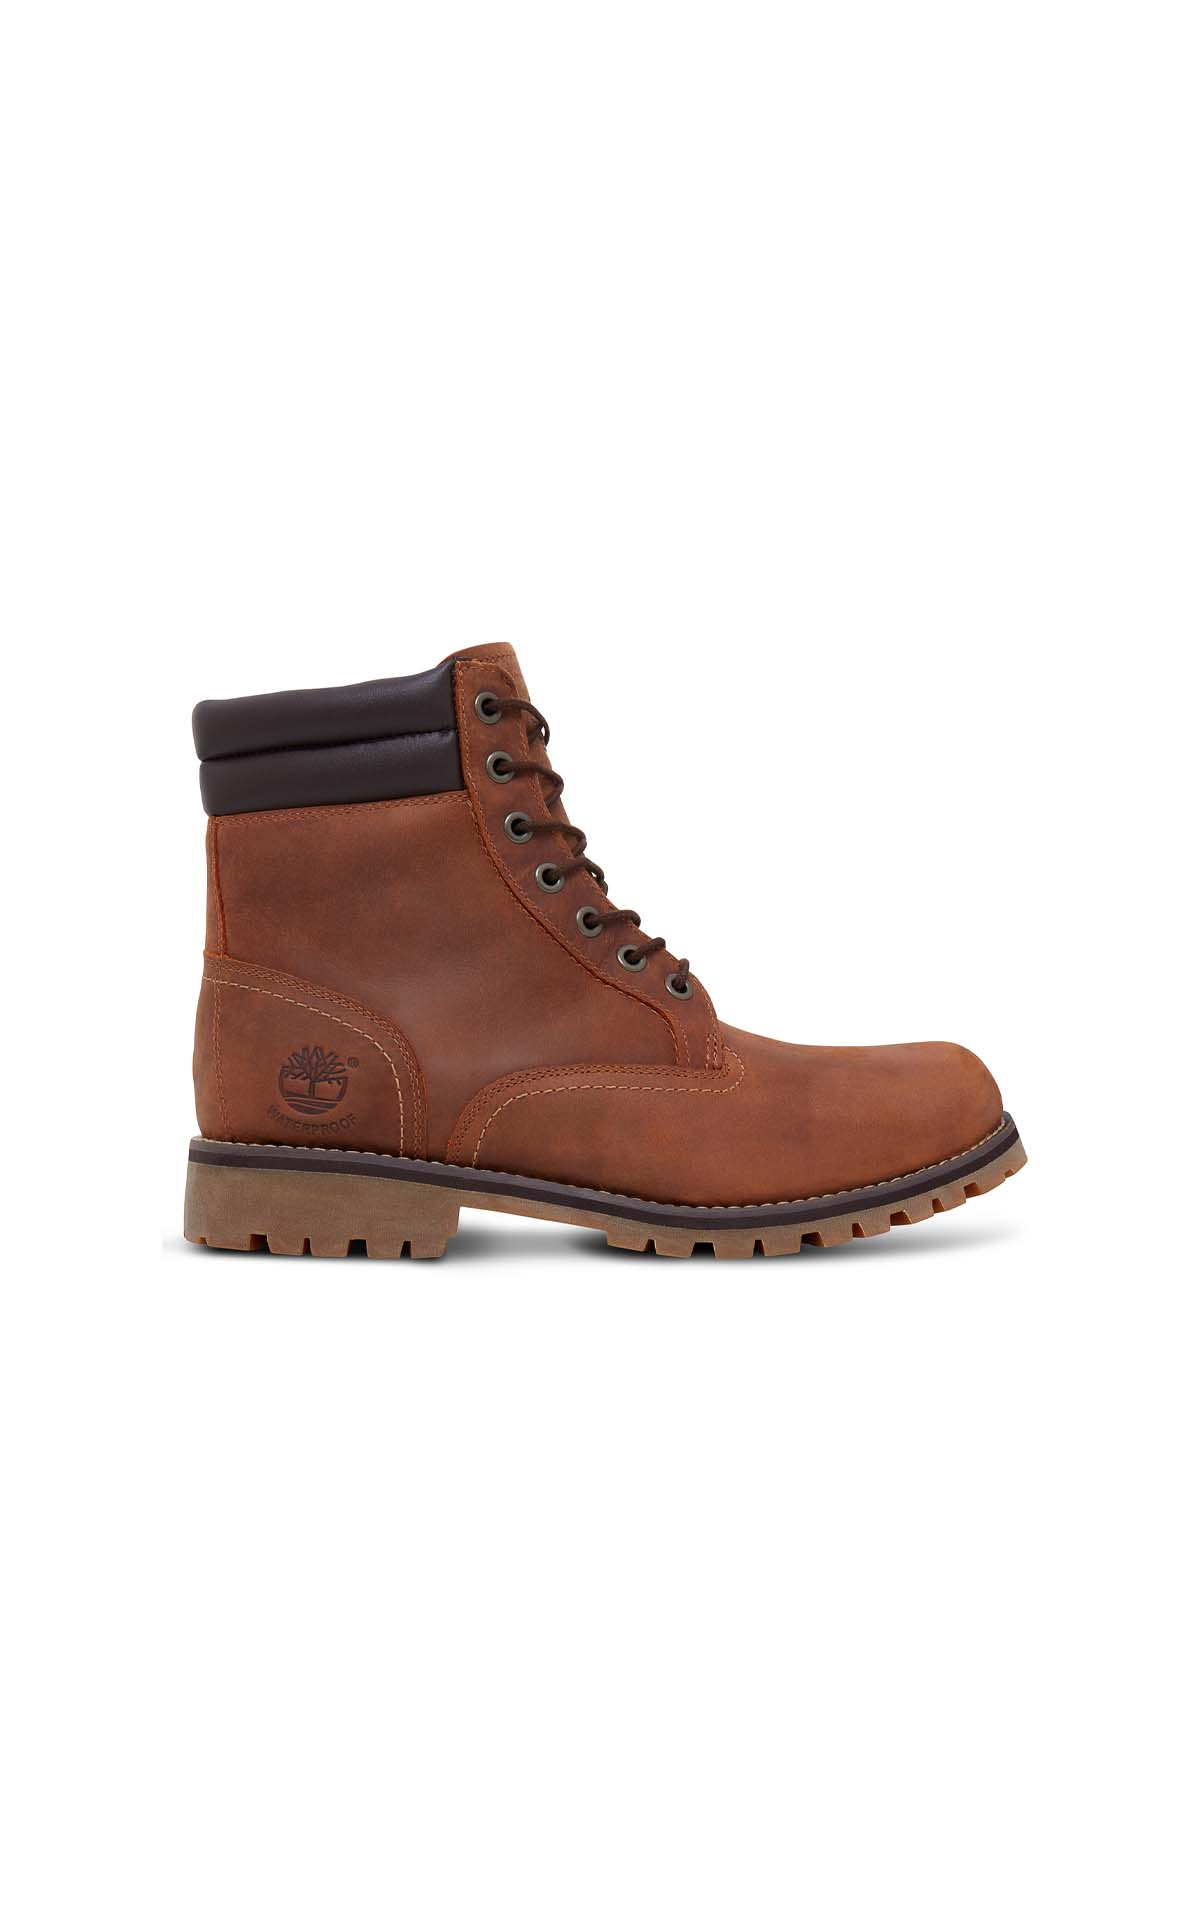 Timberland Outlet • Las Rozas Village